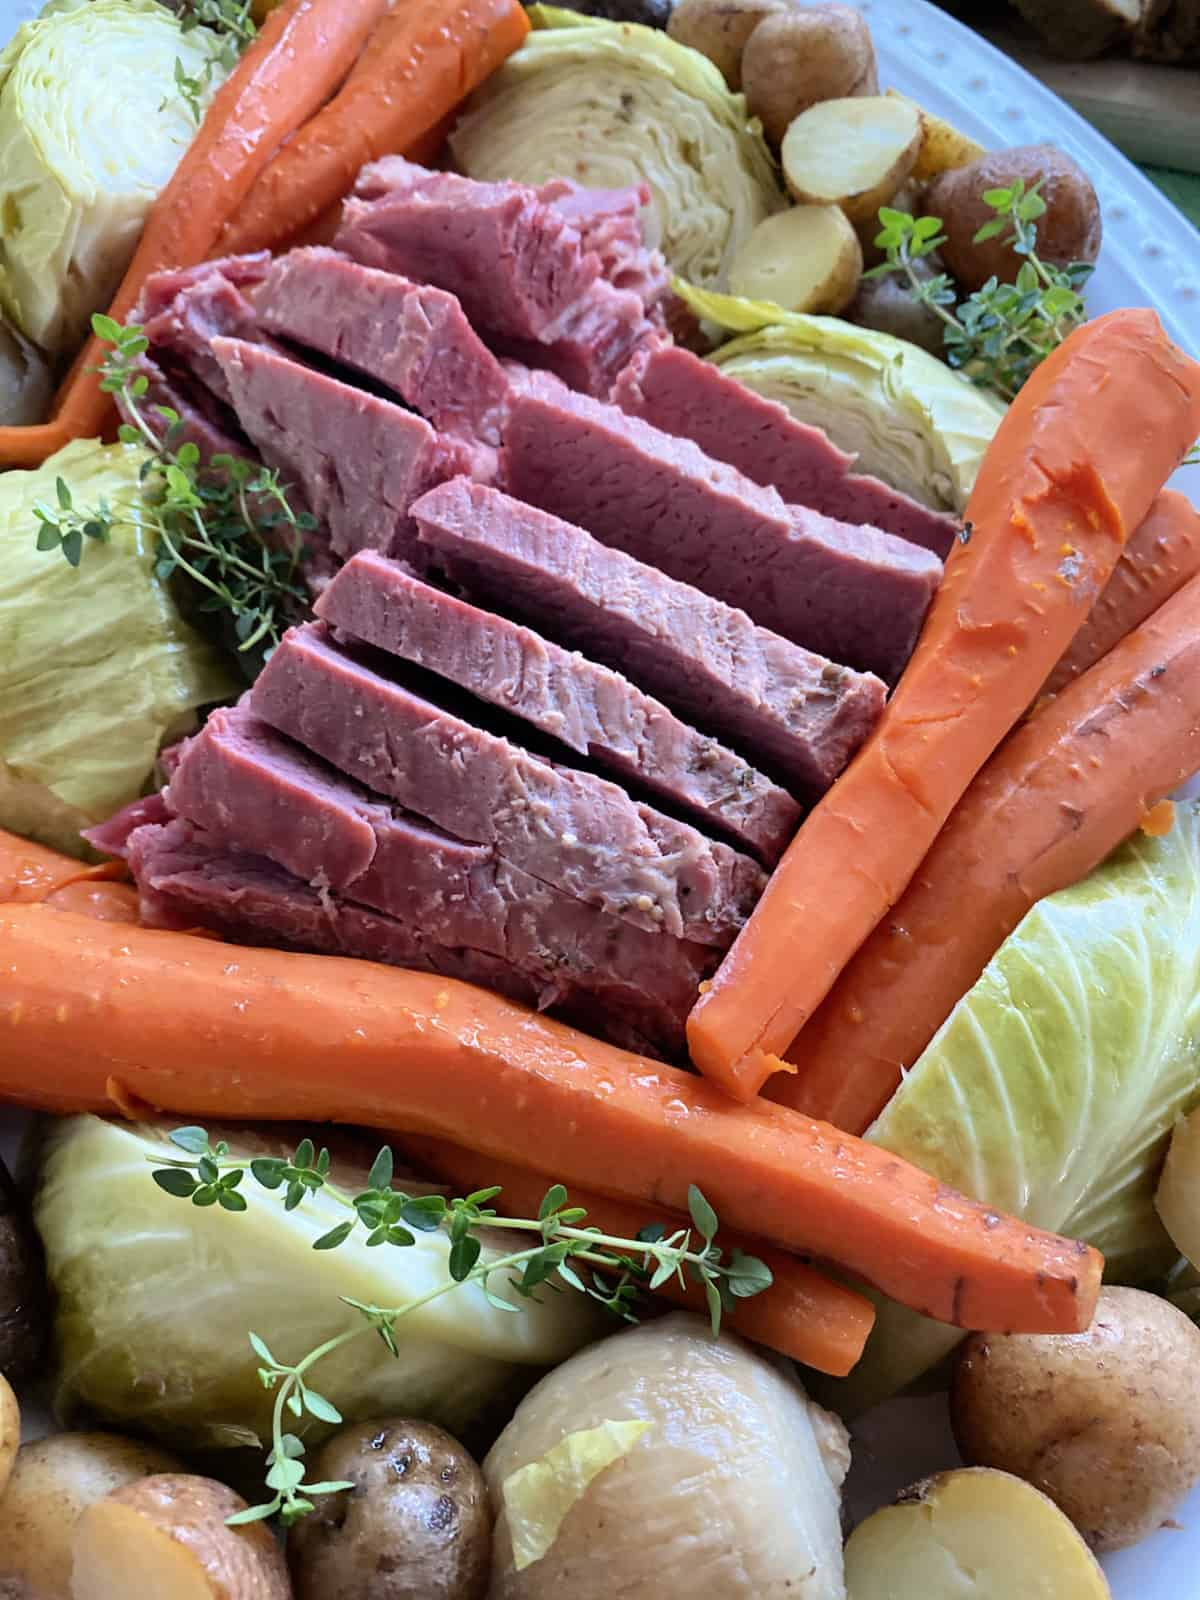 Close up of a platter of beef, carrots, cabbage, and potatoes.